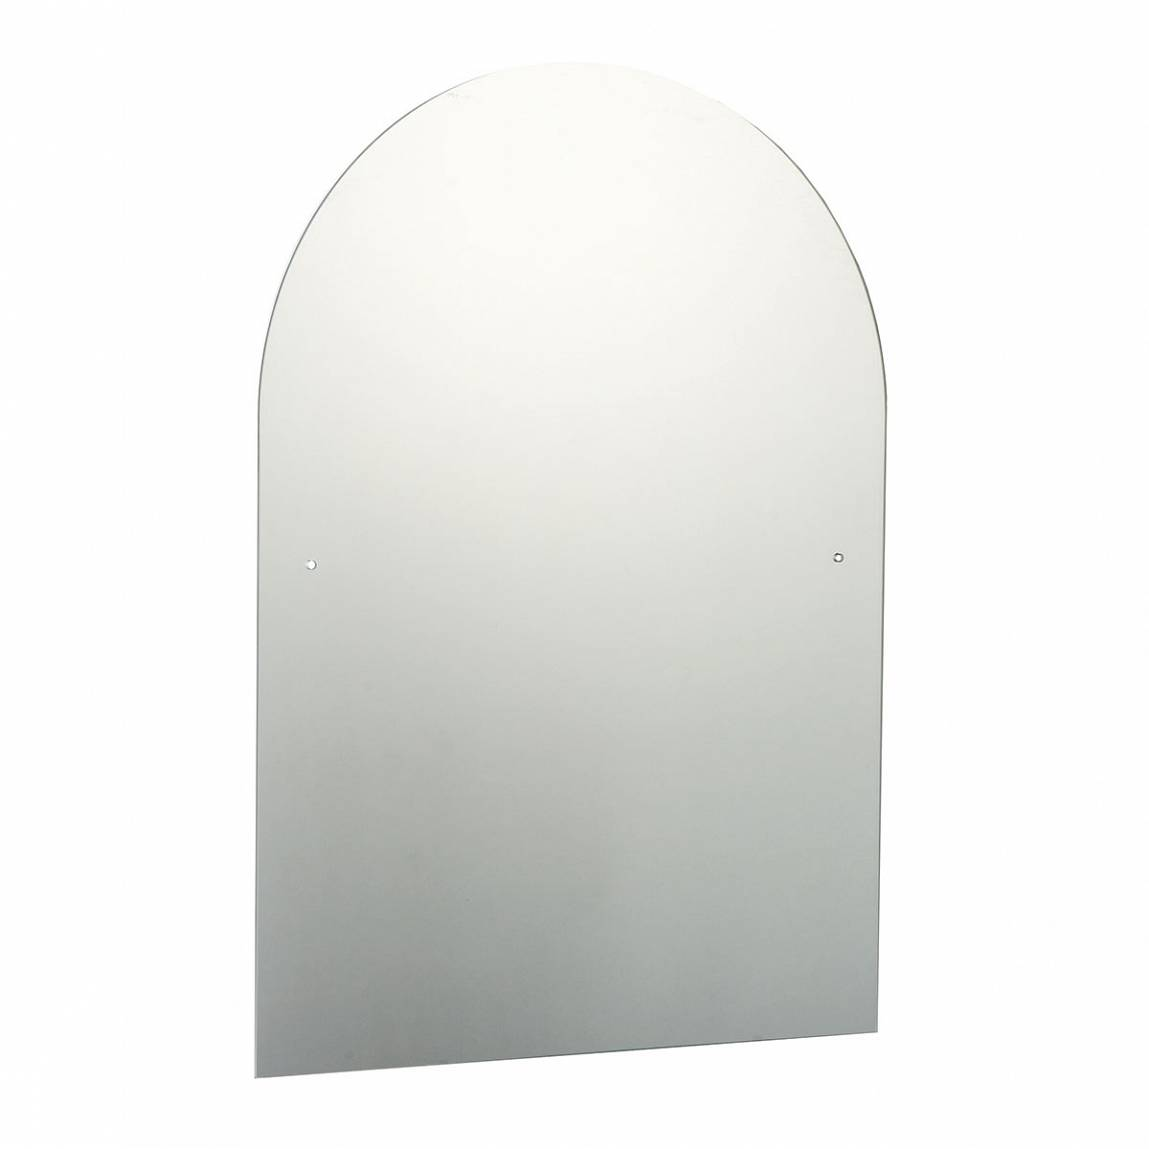 Image of Arched Drilled Mirror 50x70cm